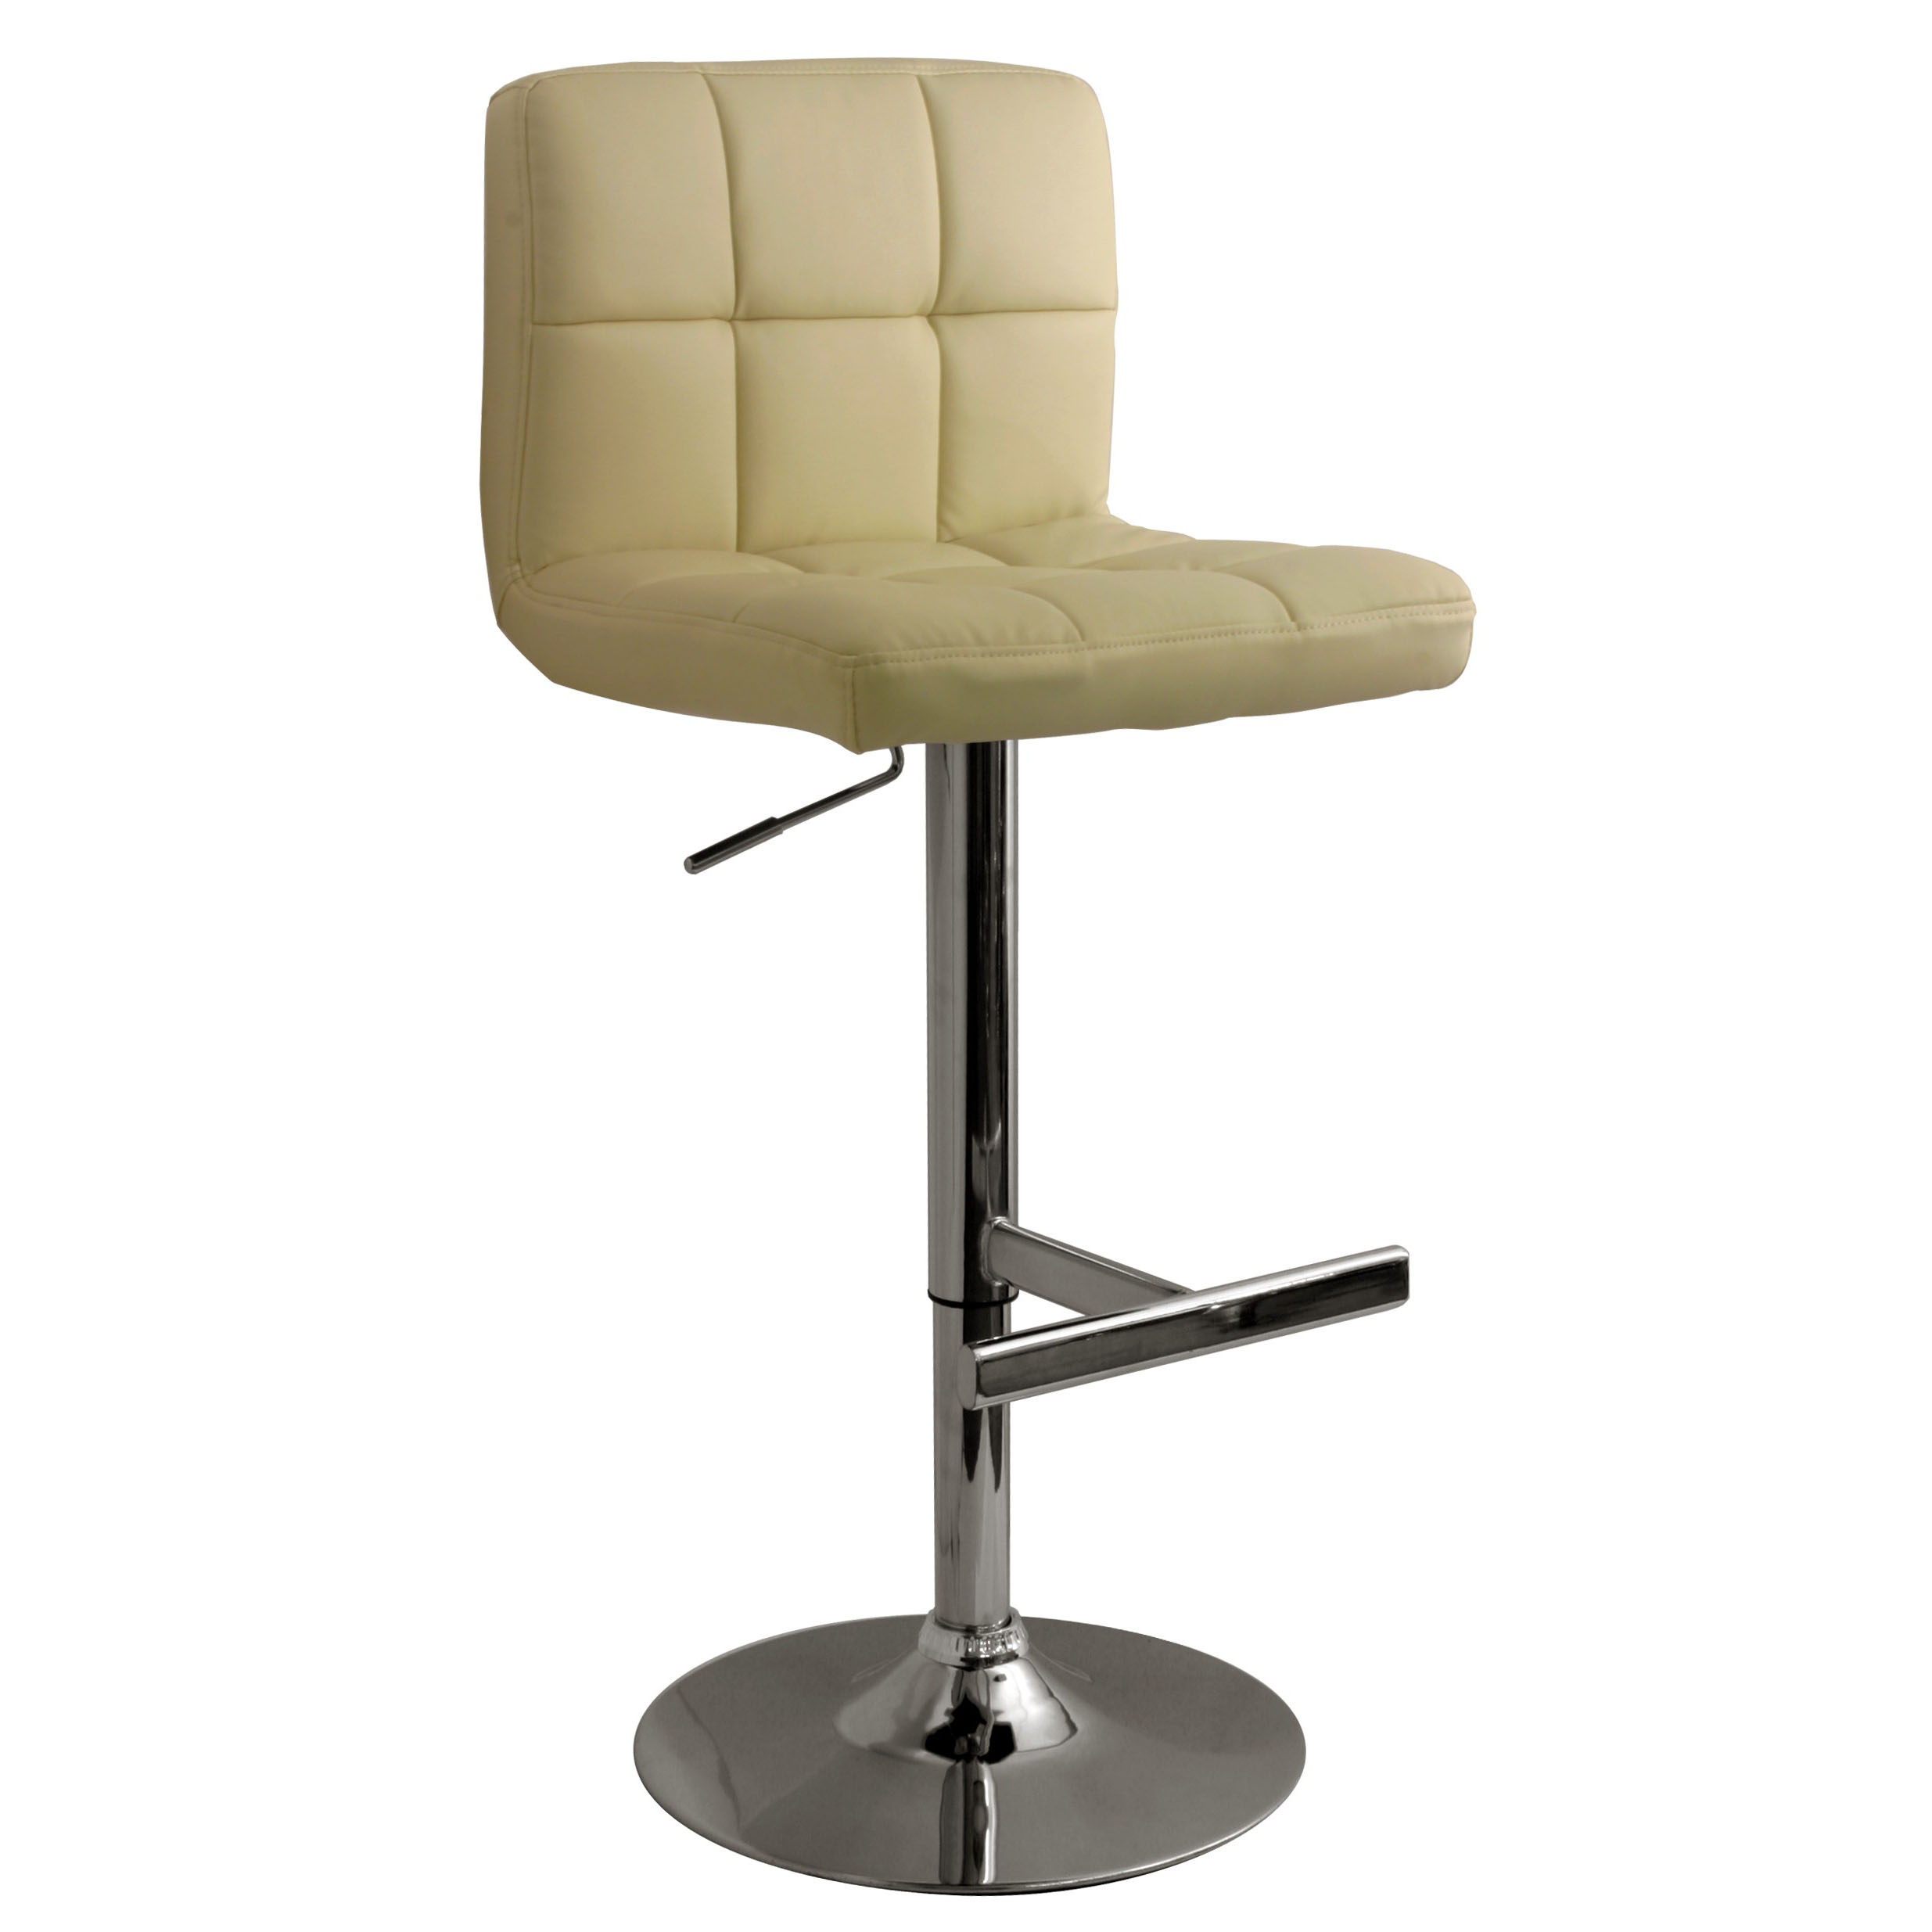 Allegro Leather Bar Stool - Cream